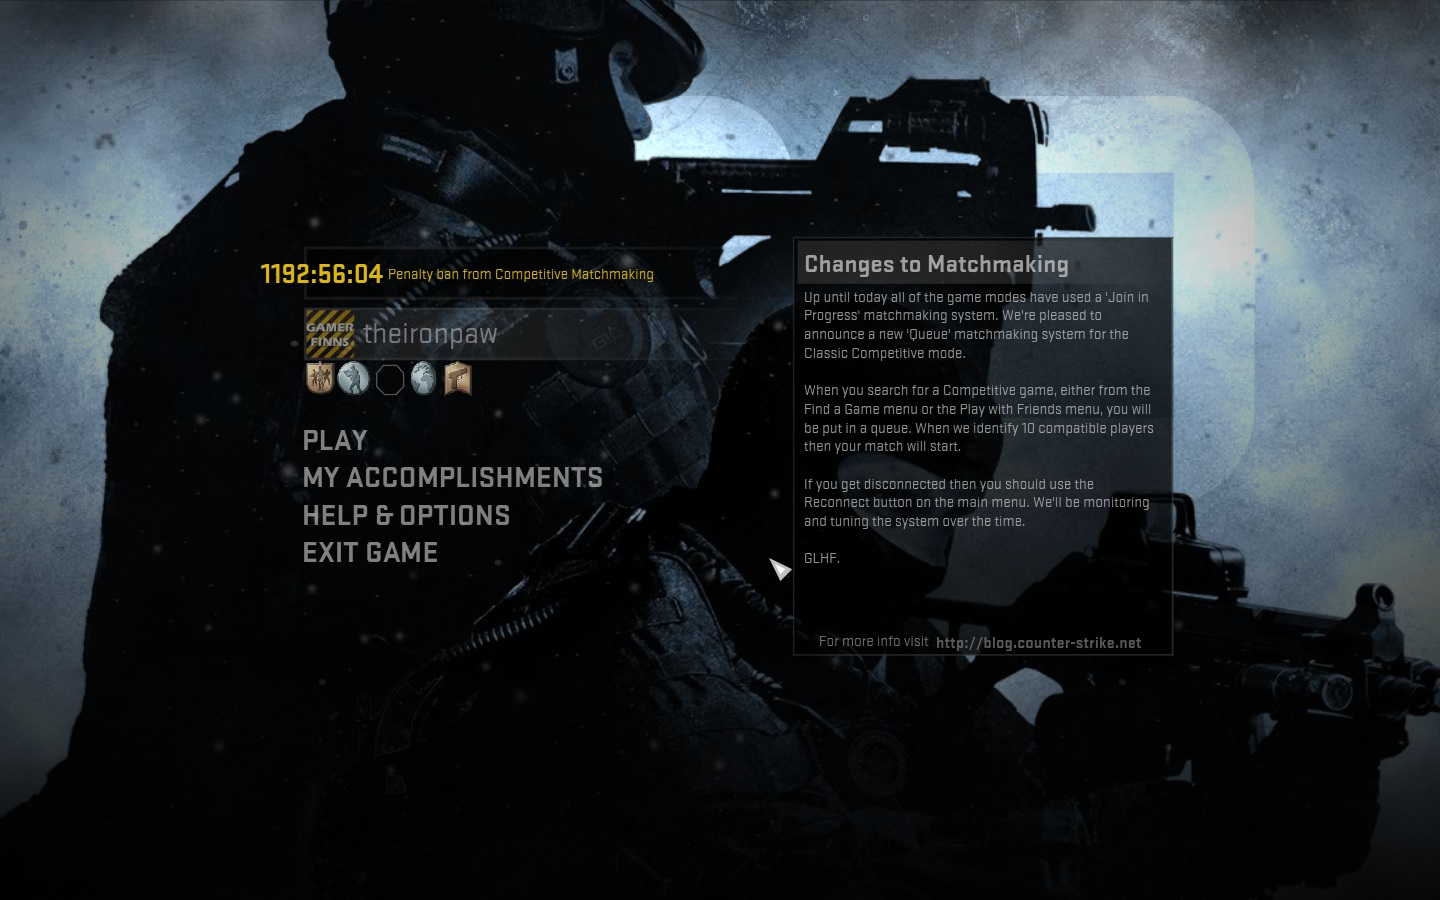 Halo reach matchmaking ban quitting